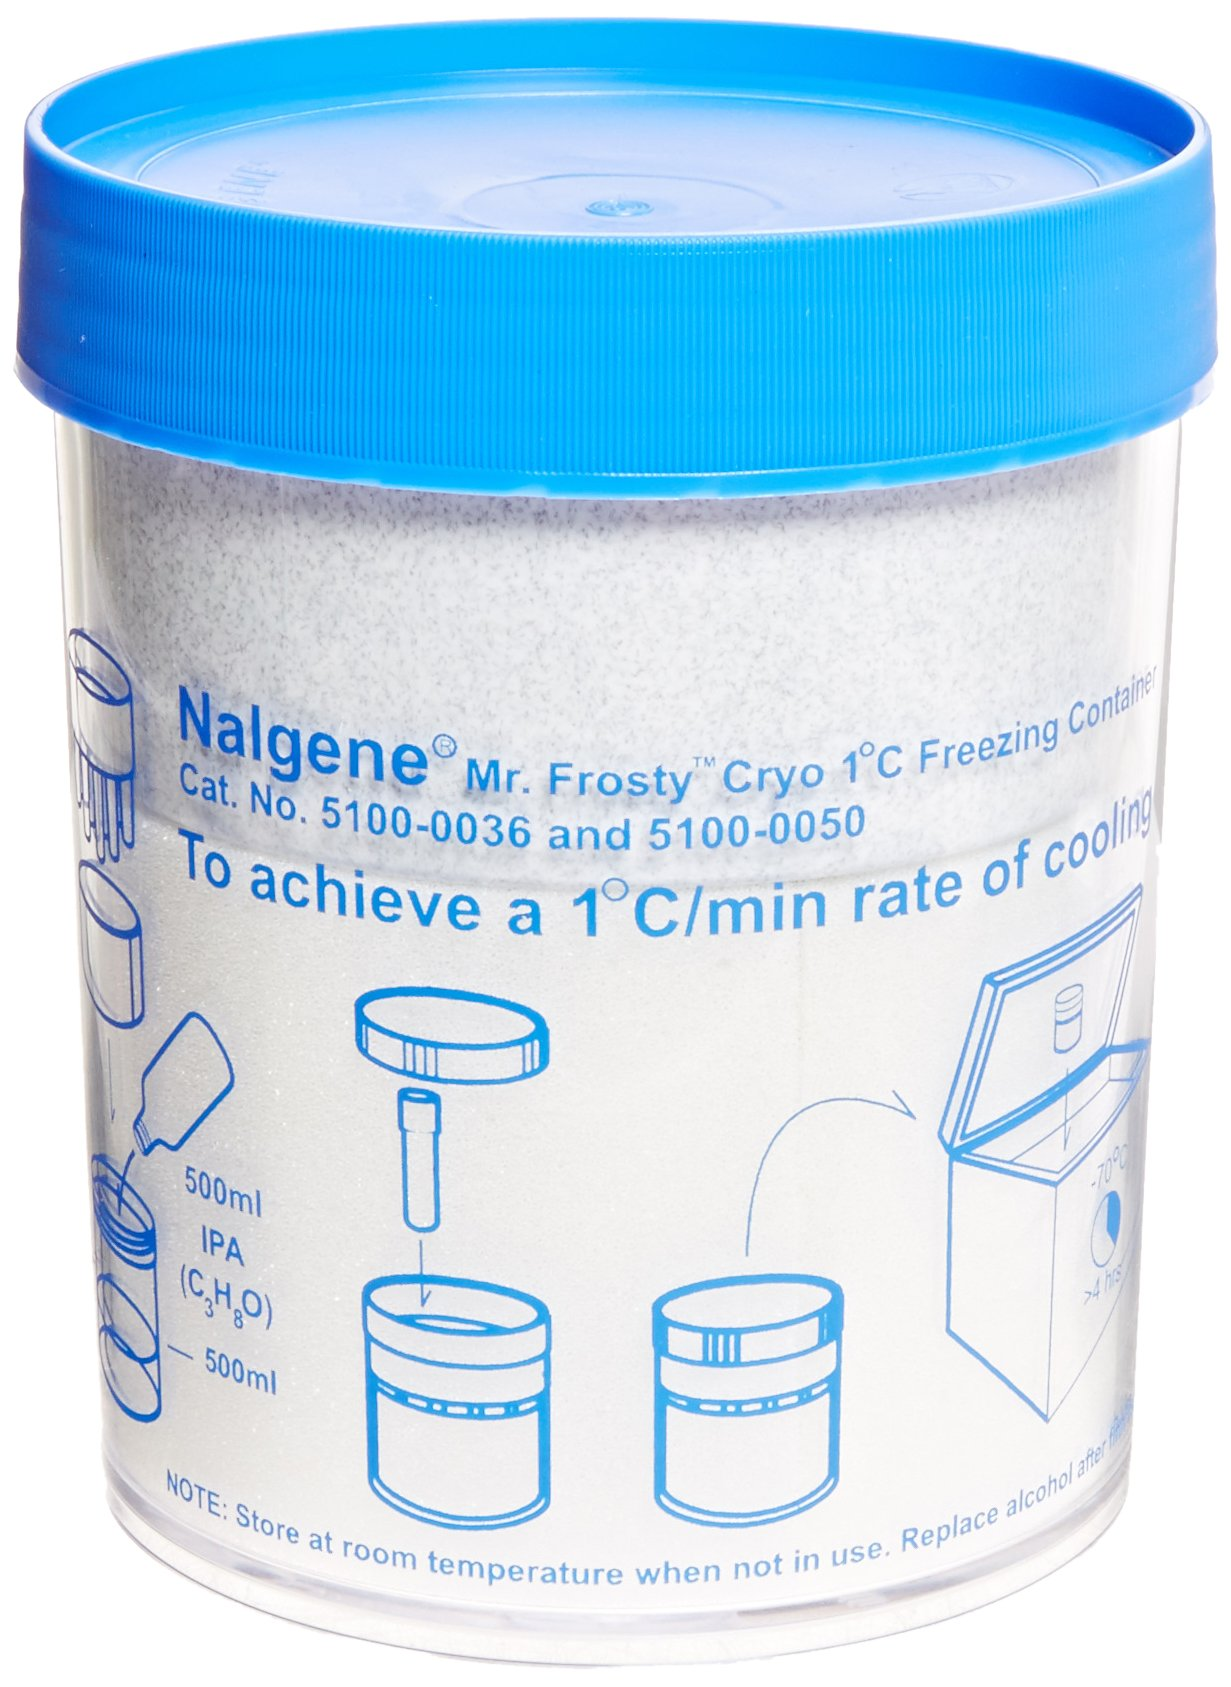 Nalgene 5100-0050 Mr. Frosty Freezing Container, Clear, 12 No. of Tubes, 5ml Tube Capacity, 151mm H x 117mm D